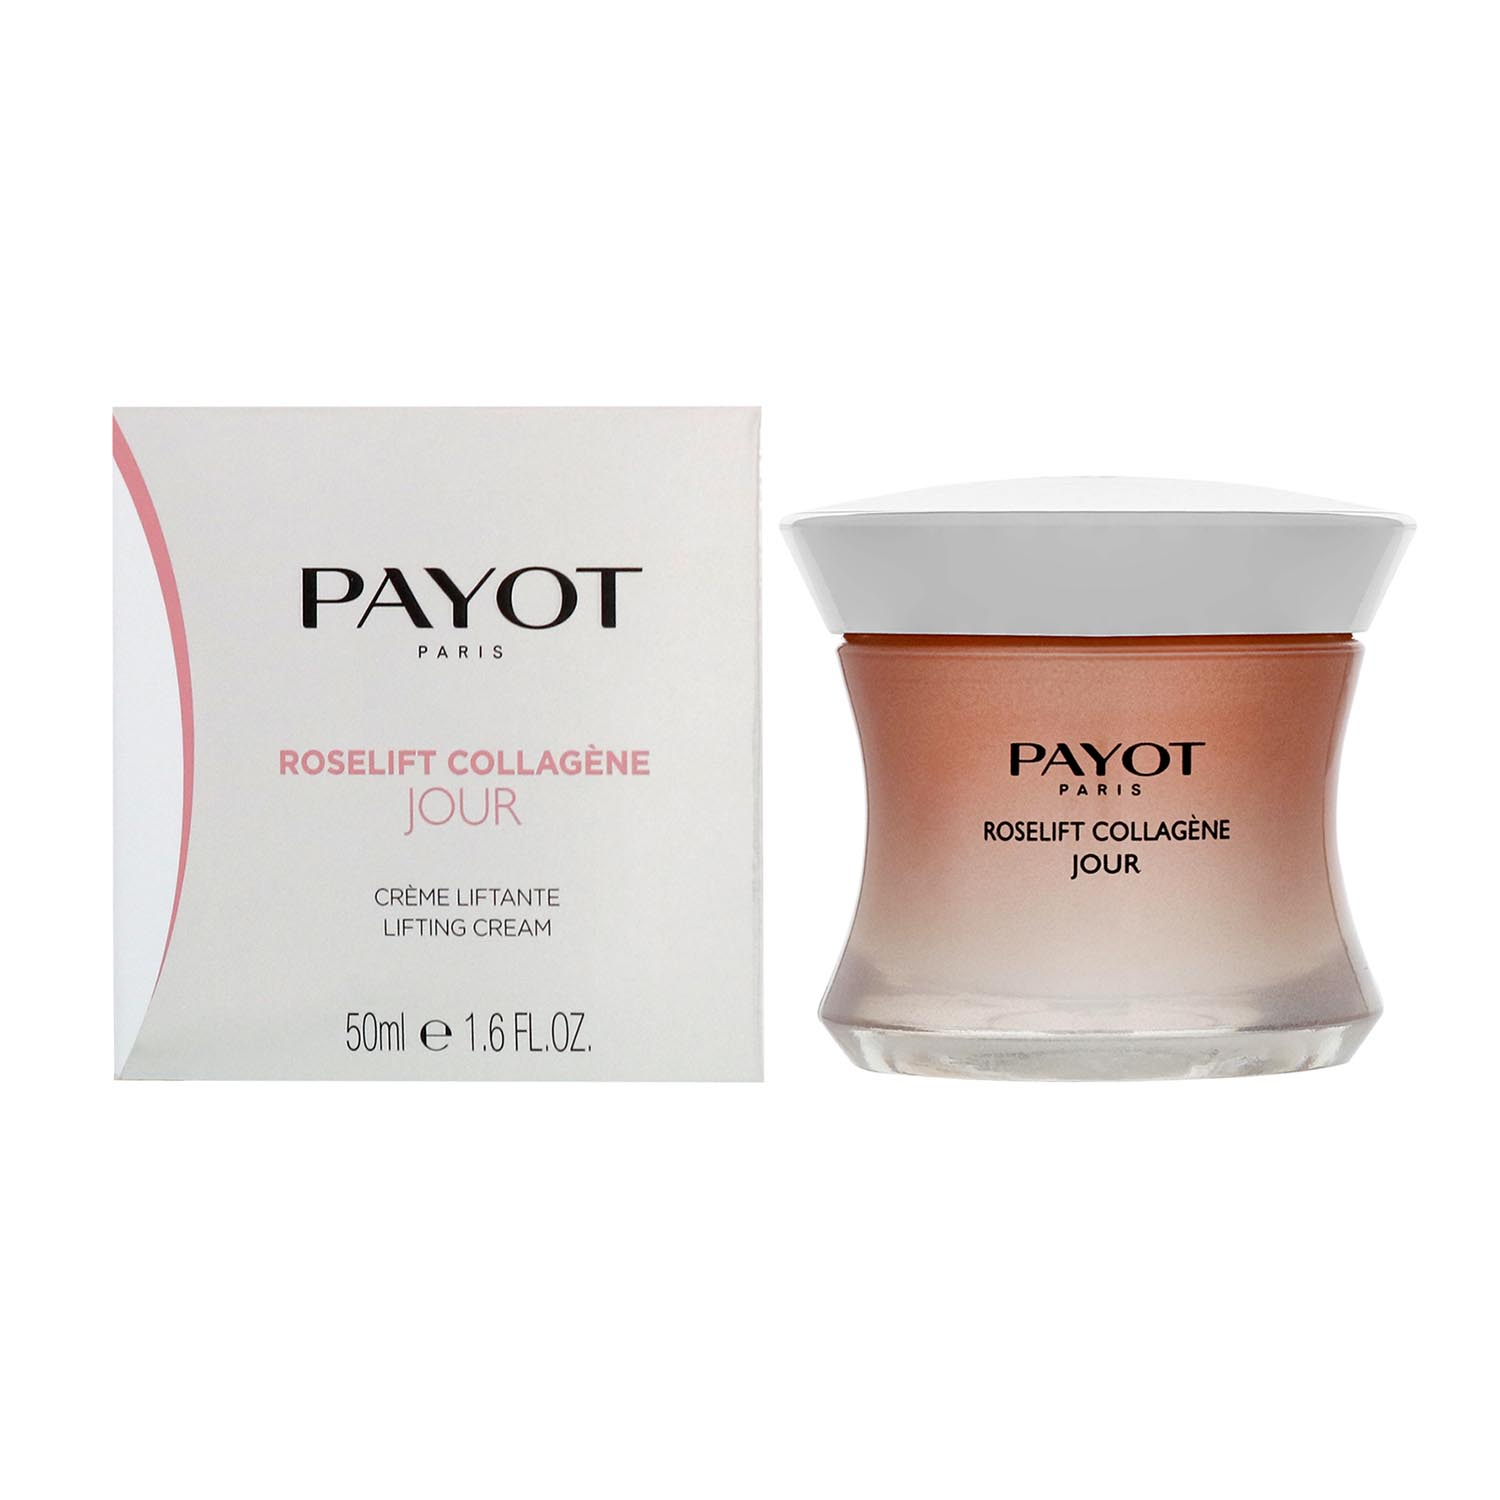 Payot roselift collagene jour creme 50ml